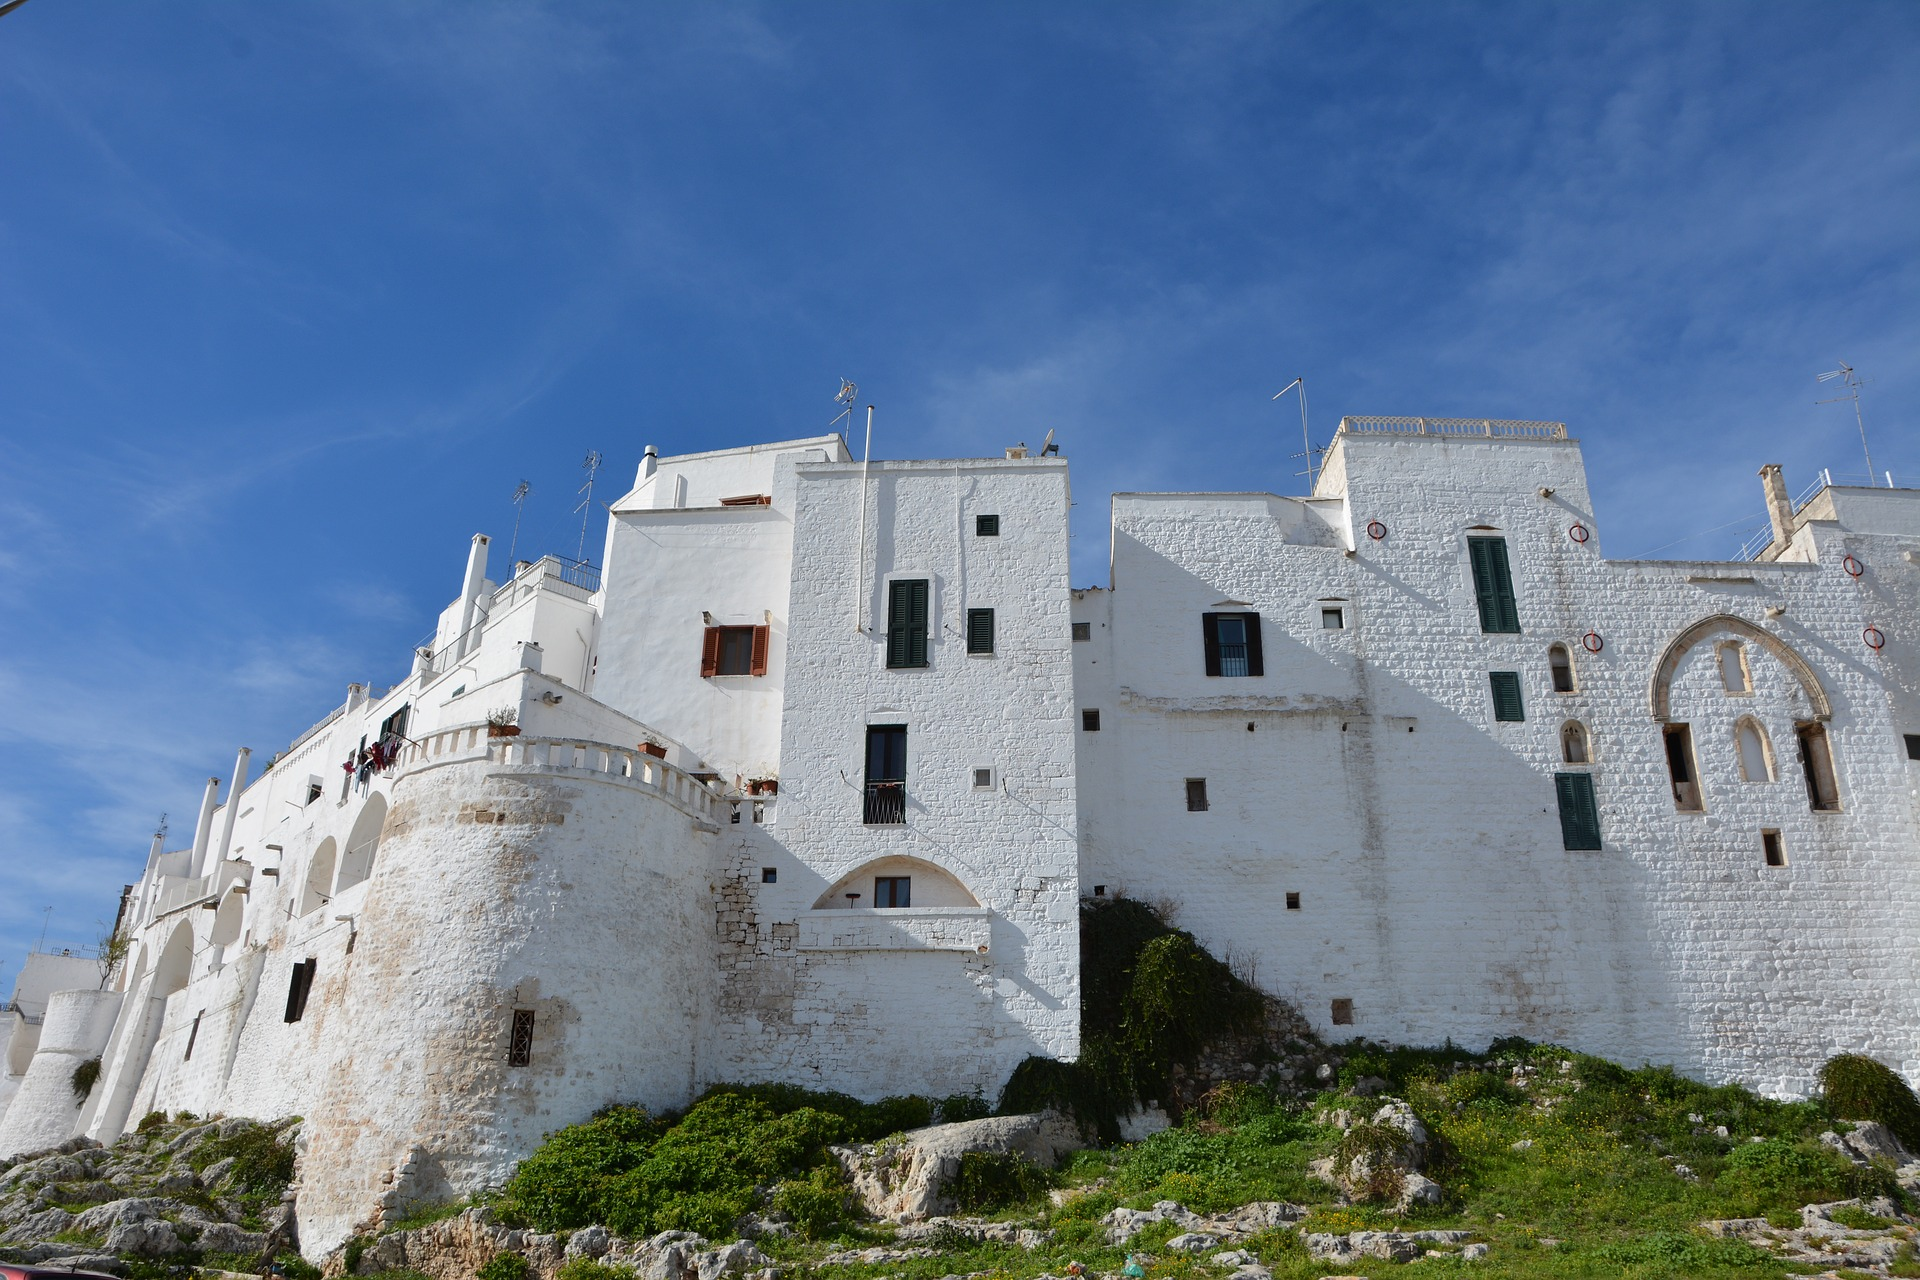 Otranto, fortified city on the Adriatic - Discover Puglia with us